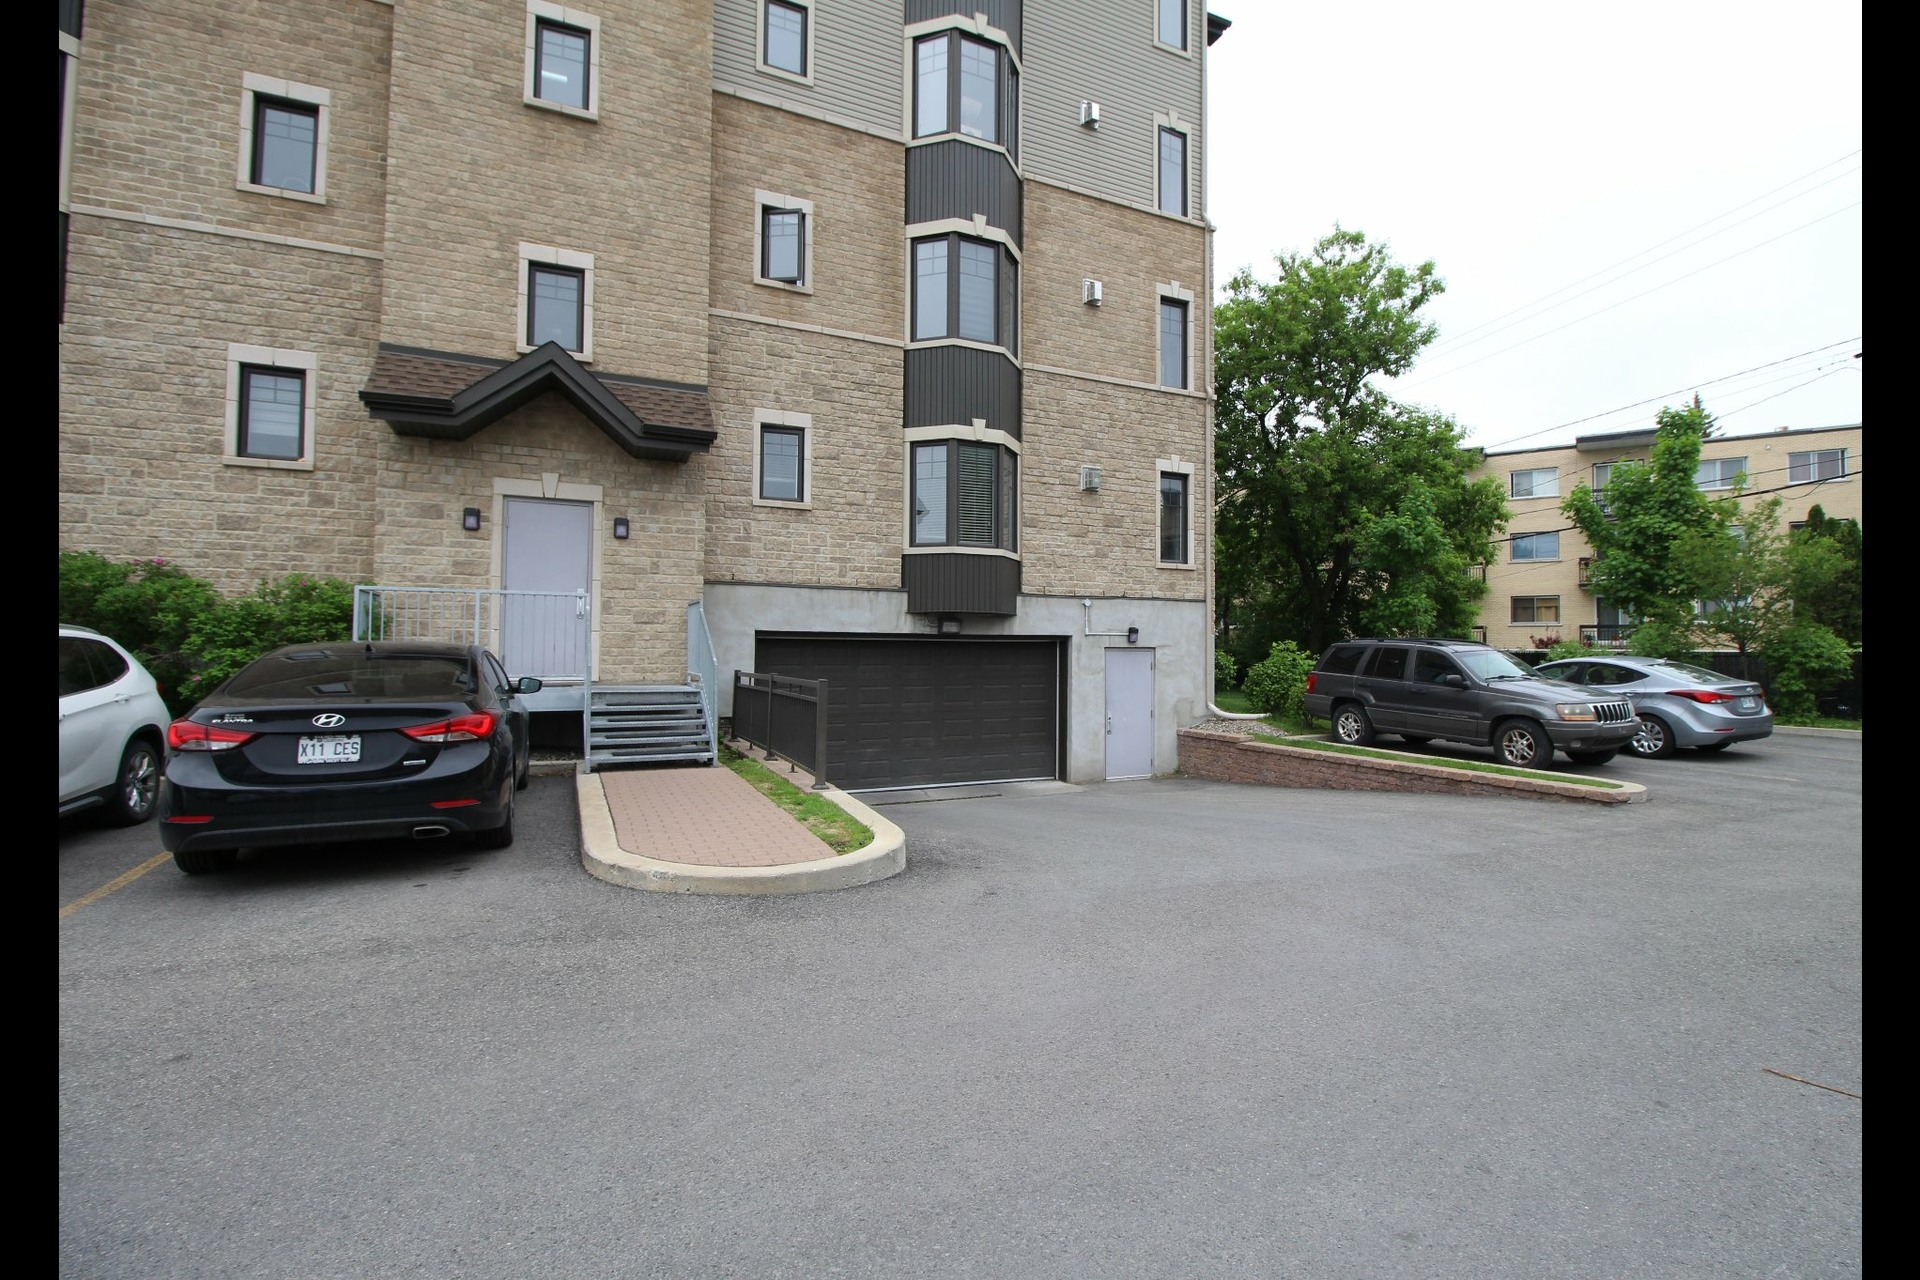 image 18 - Apartment For sale Montréal Pierrefonds-Roxboro  - 7 rooms